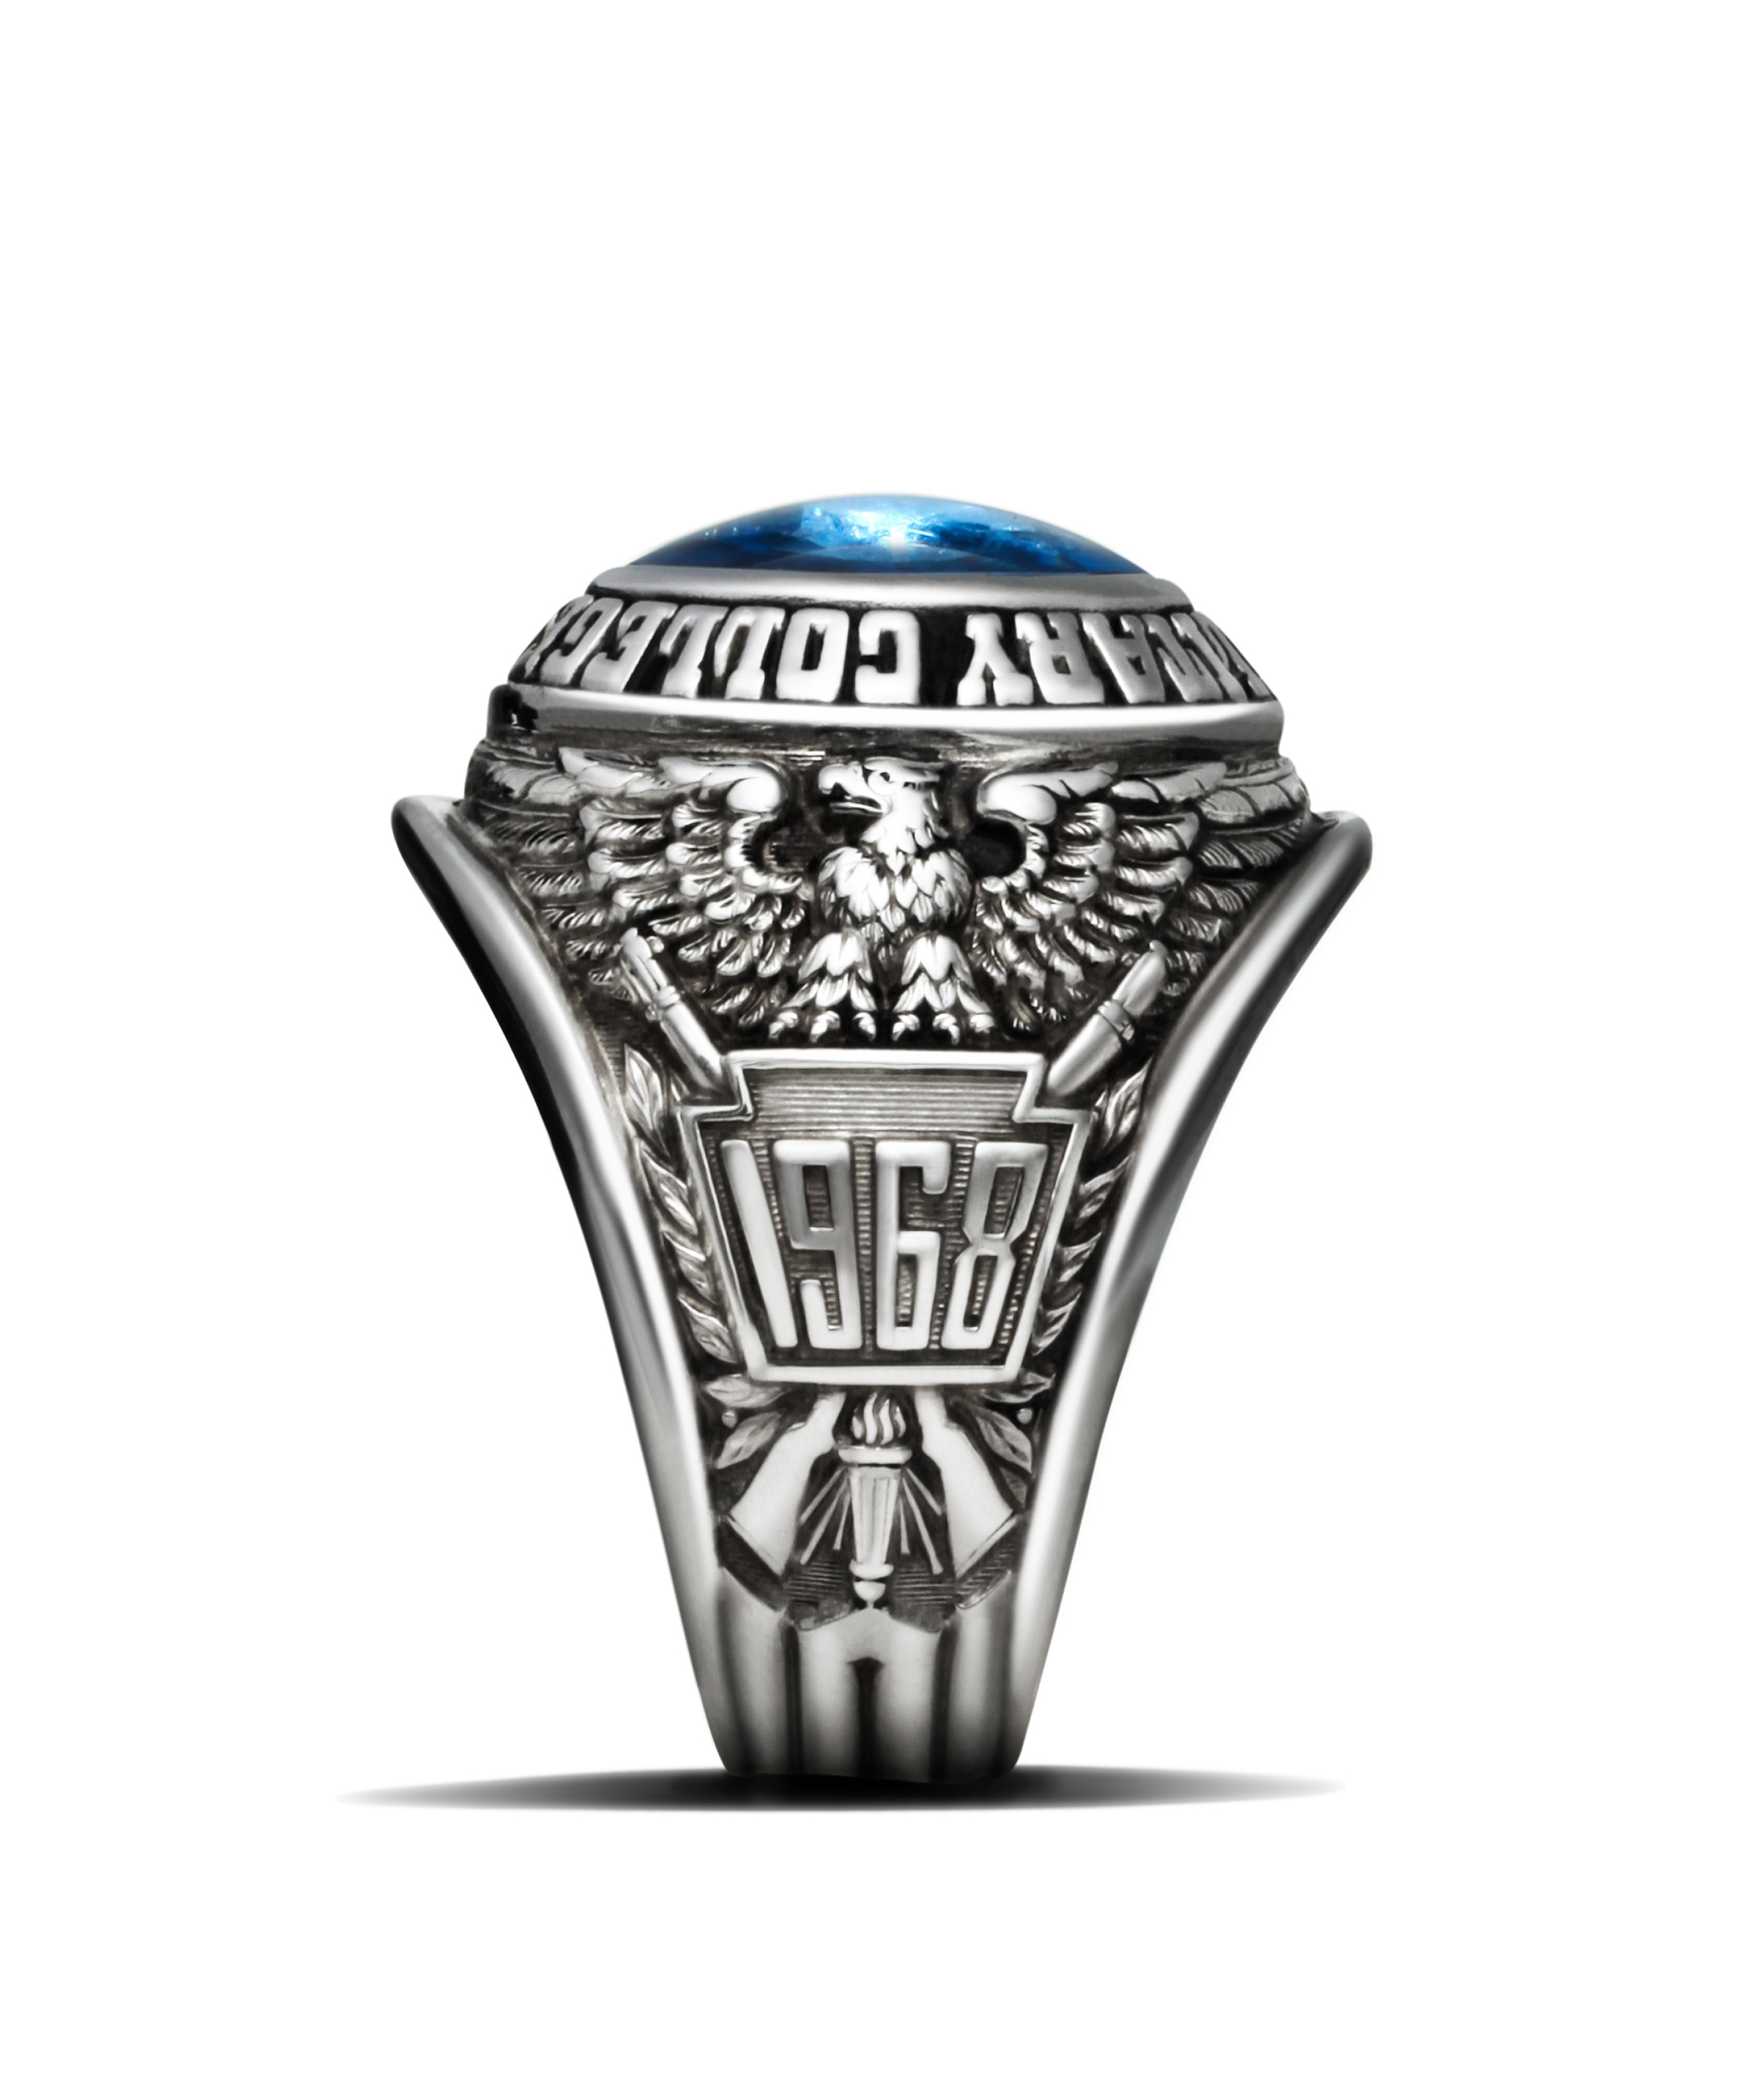 rings ringwraps aggie copy a college am prairieview m custom work logocustom